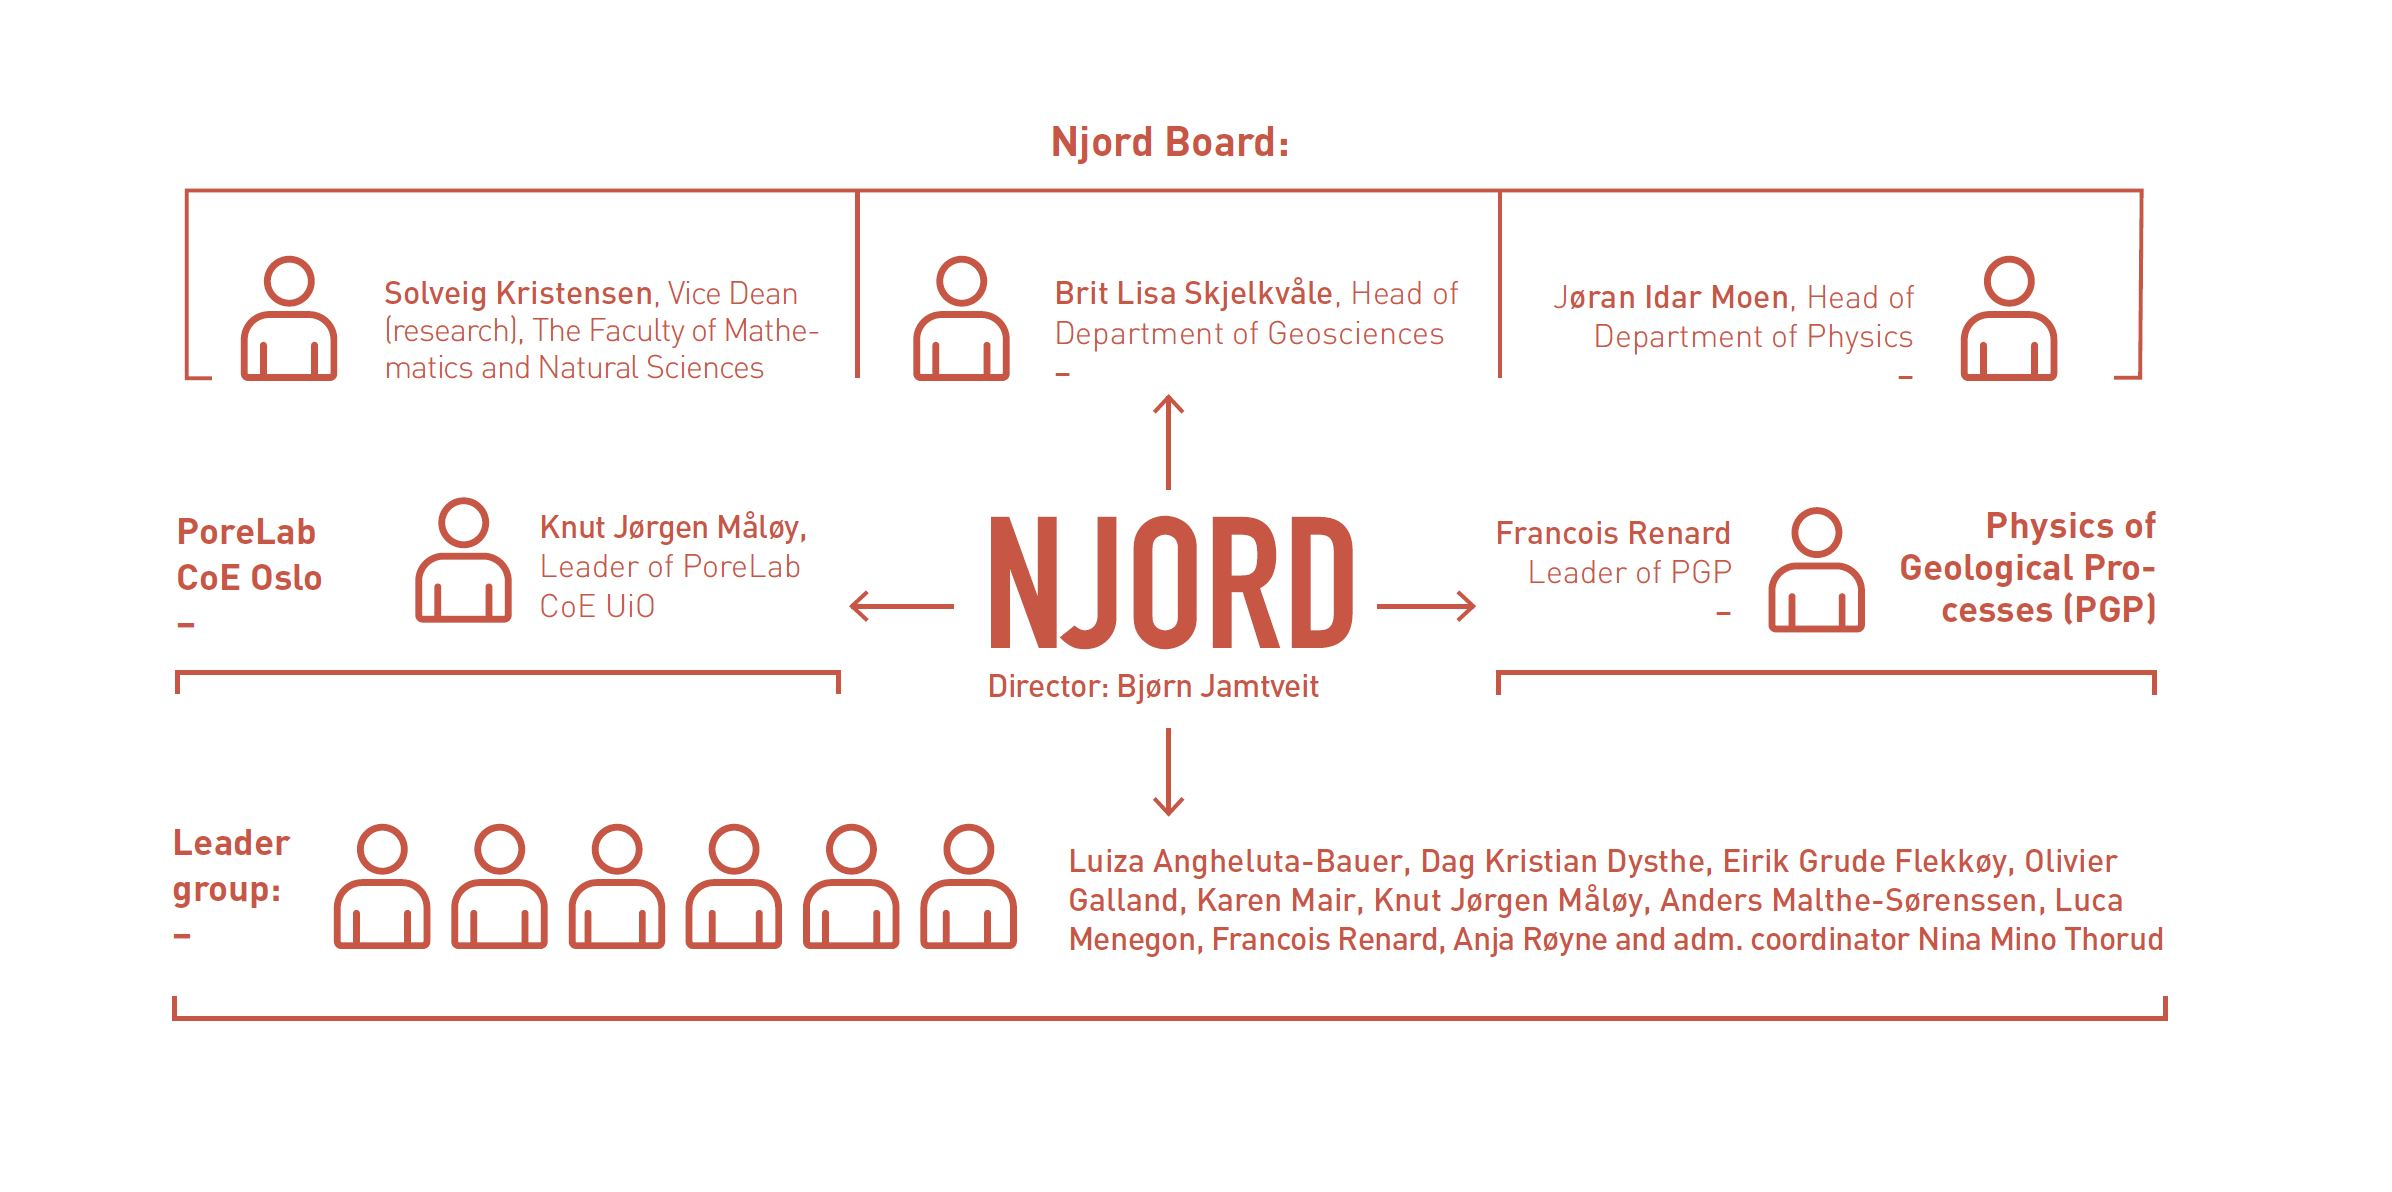 Organizational map, with the Njord Board at the top, the director second, tehn PoreLab (with Knut Jørgen Måløy) and PGP (with Francois Renard) and the group leaders.